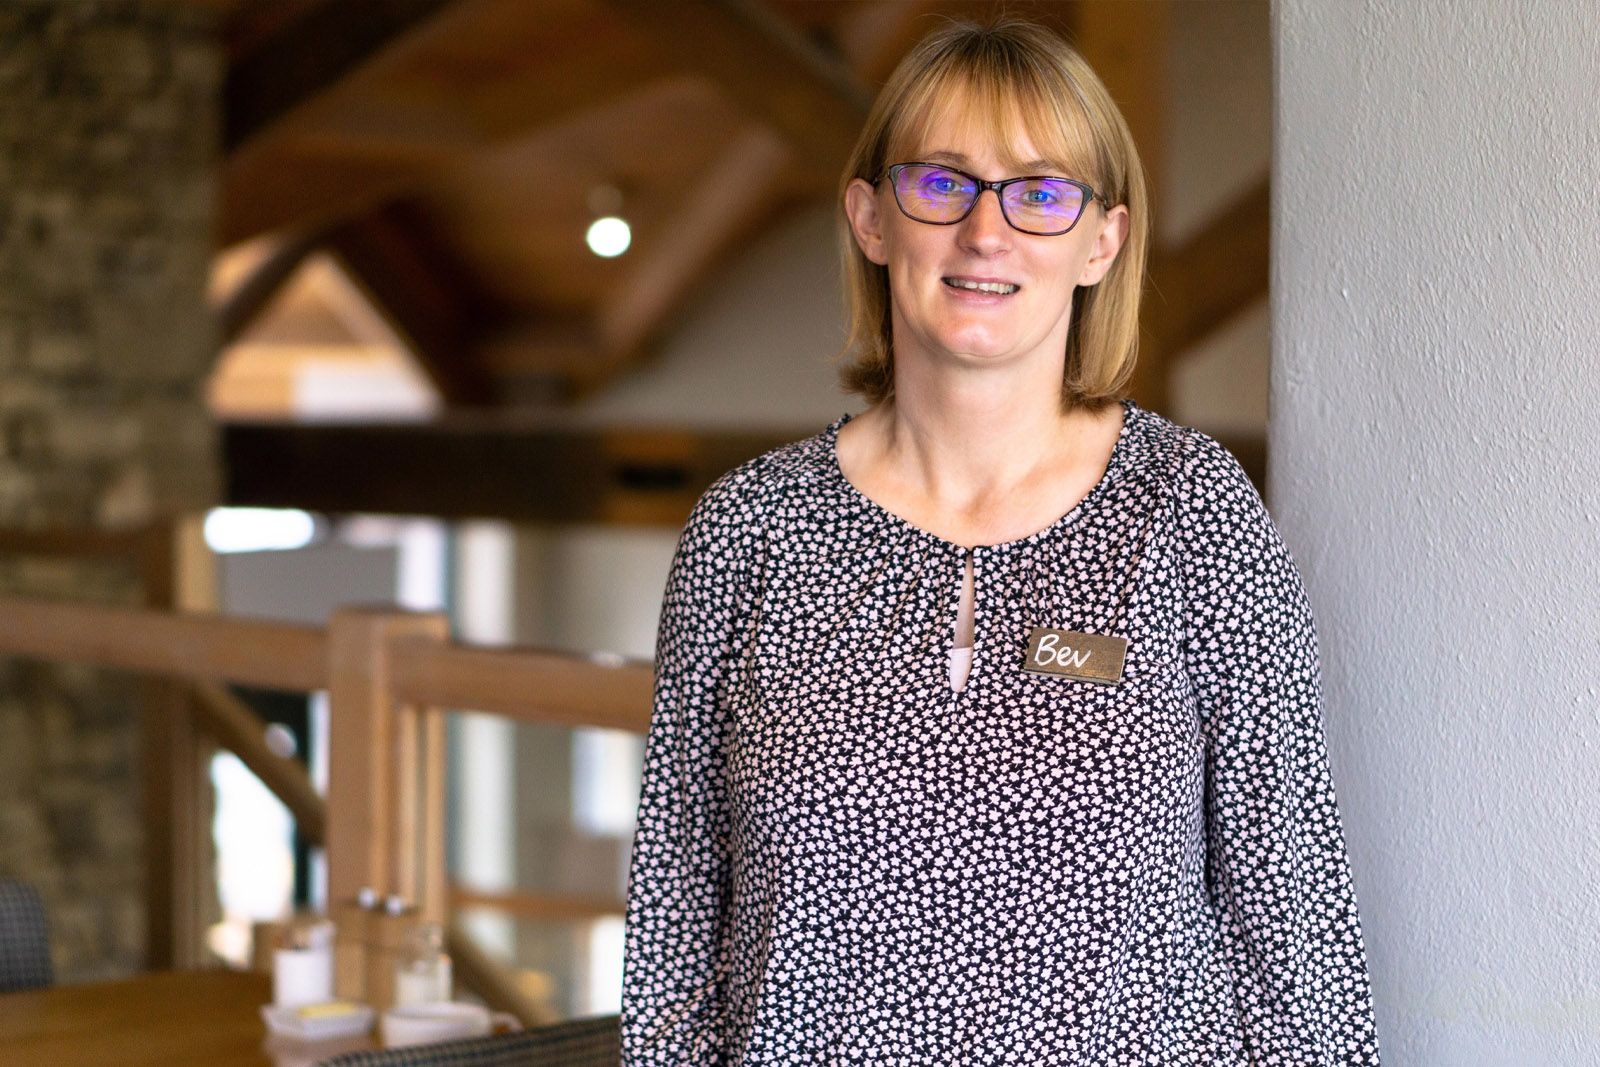 BEV - TEBAY SERVICES HOTEL OPERATIONS MANAGER